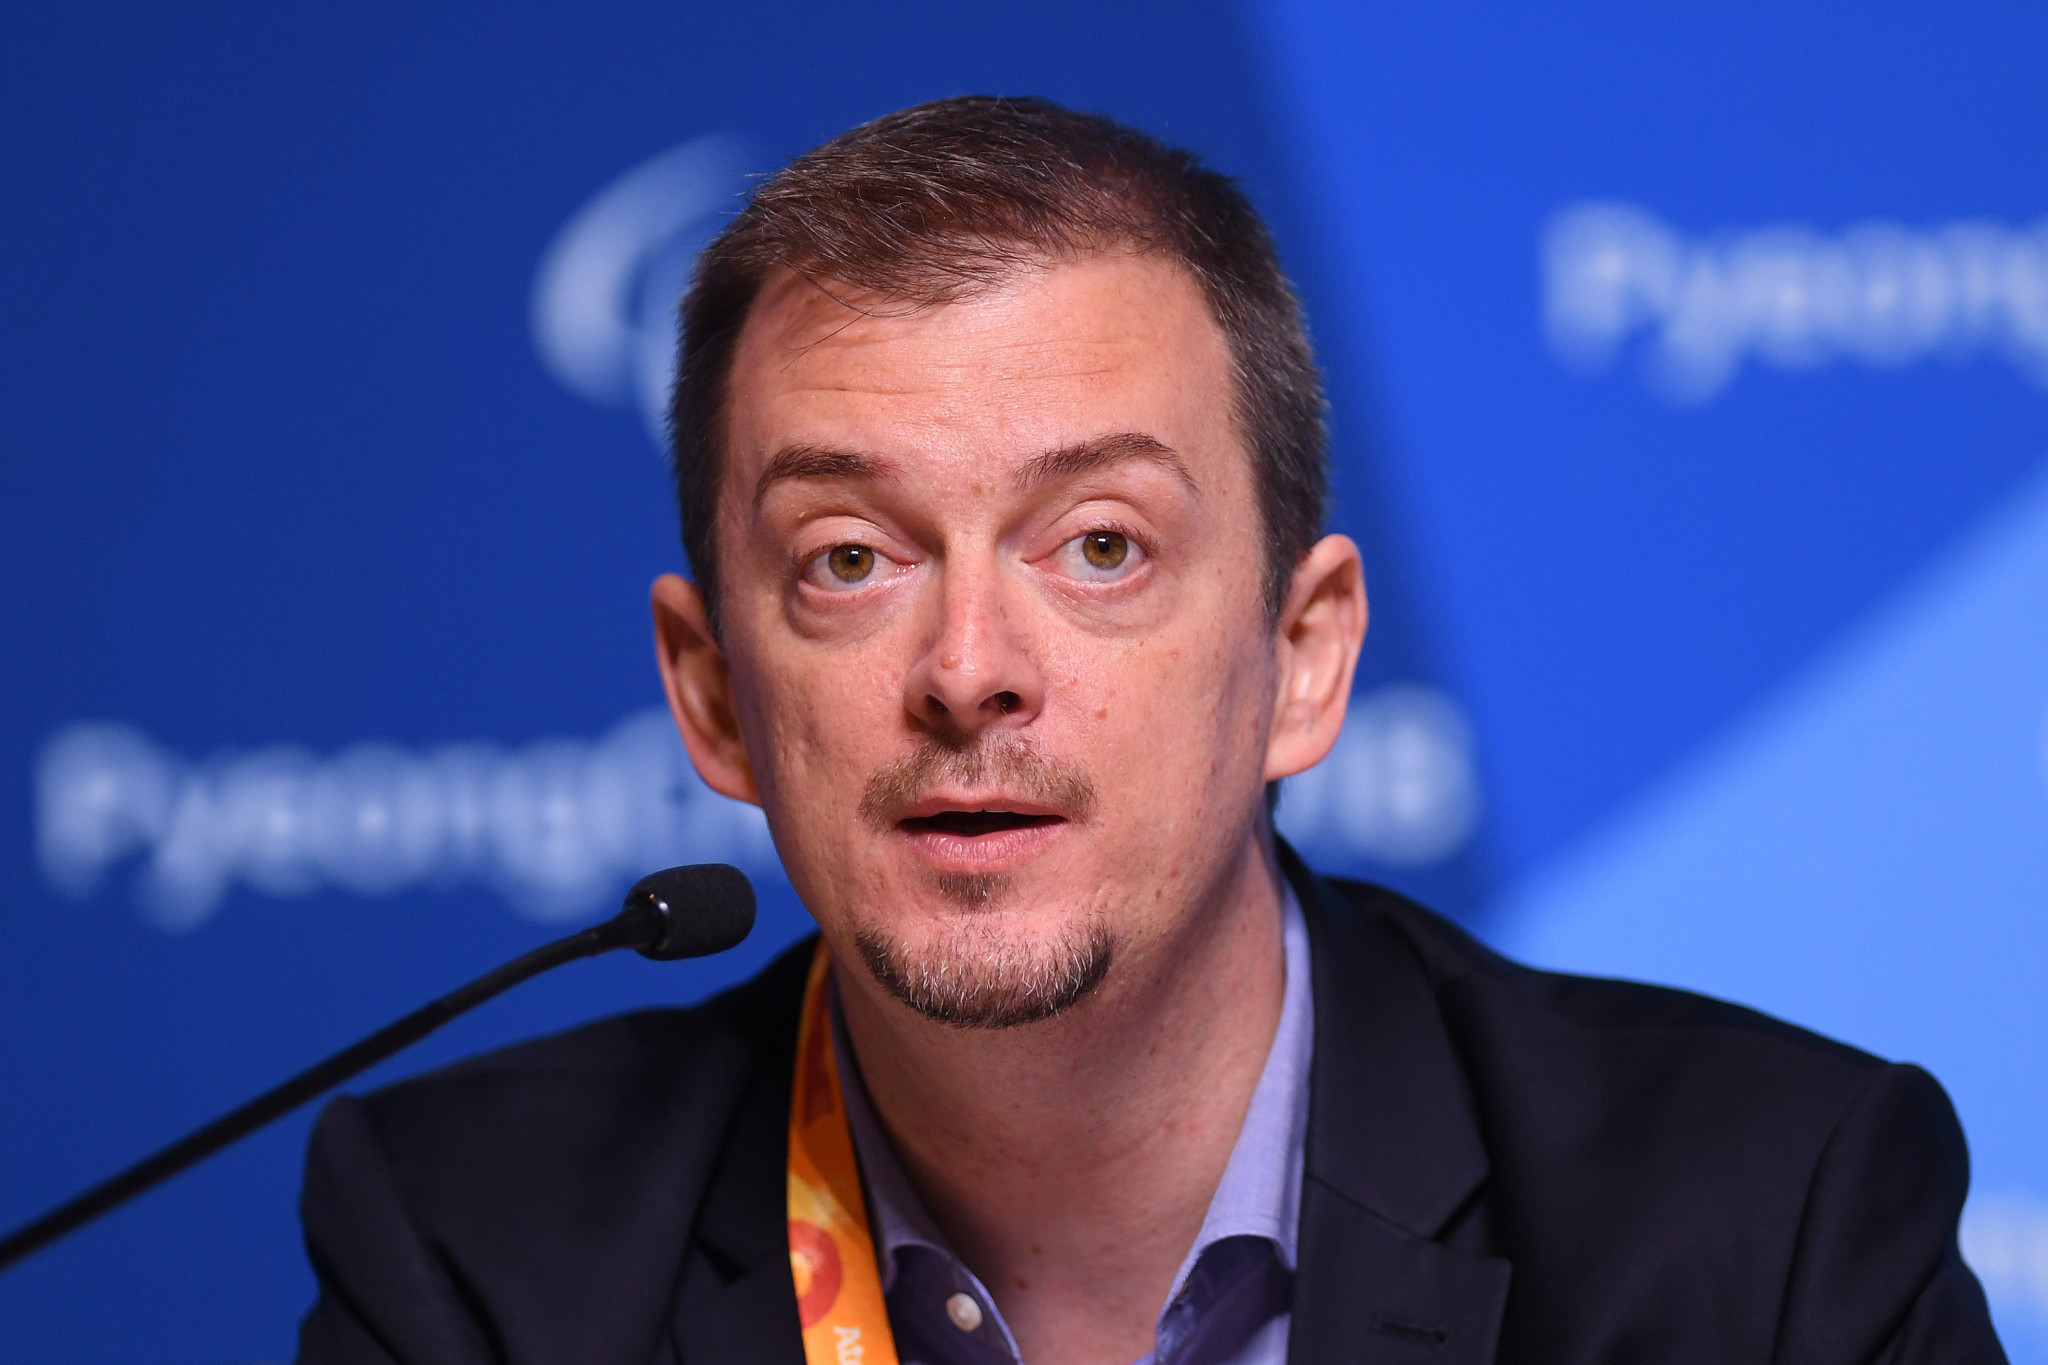 IPC President Andrew Parsons mentioned the work that Para-sport does in changing attitudes towards disability ©Getty Images